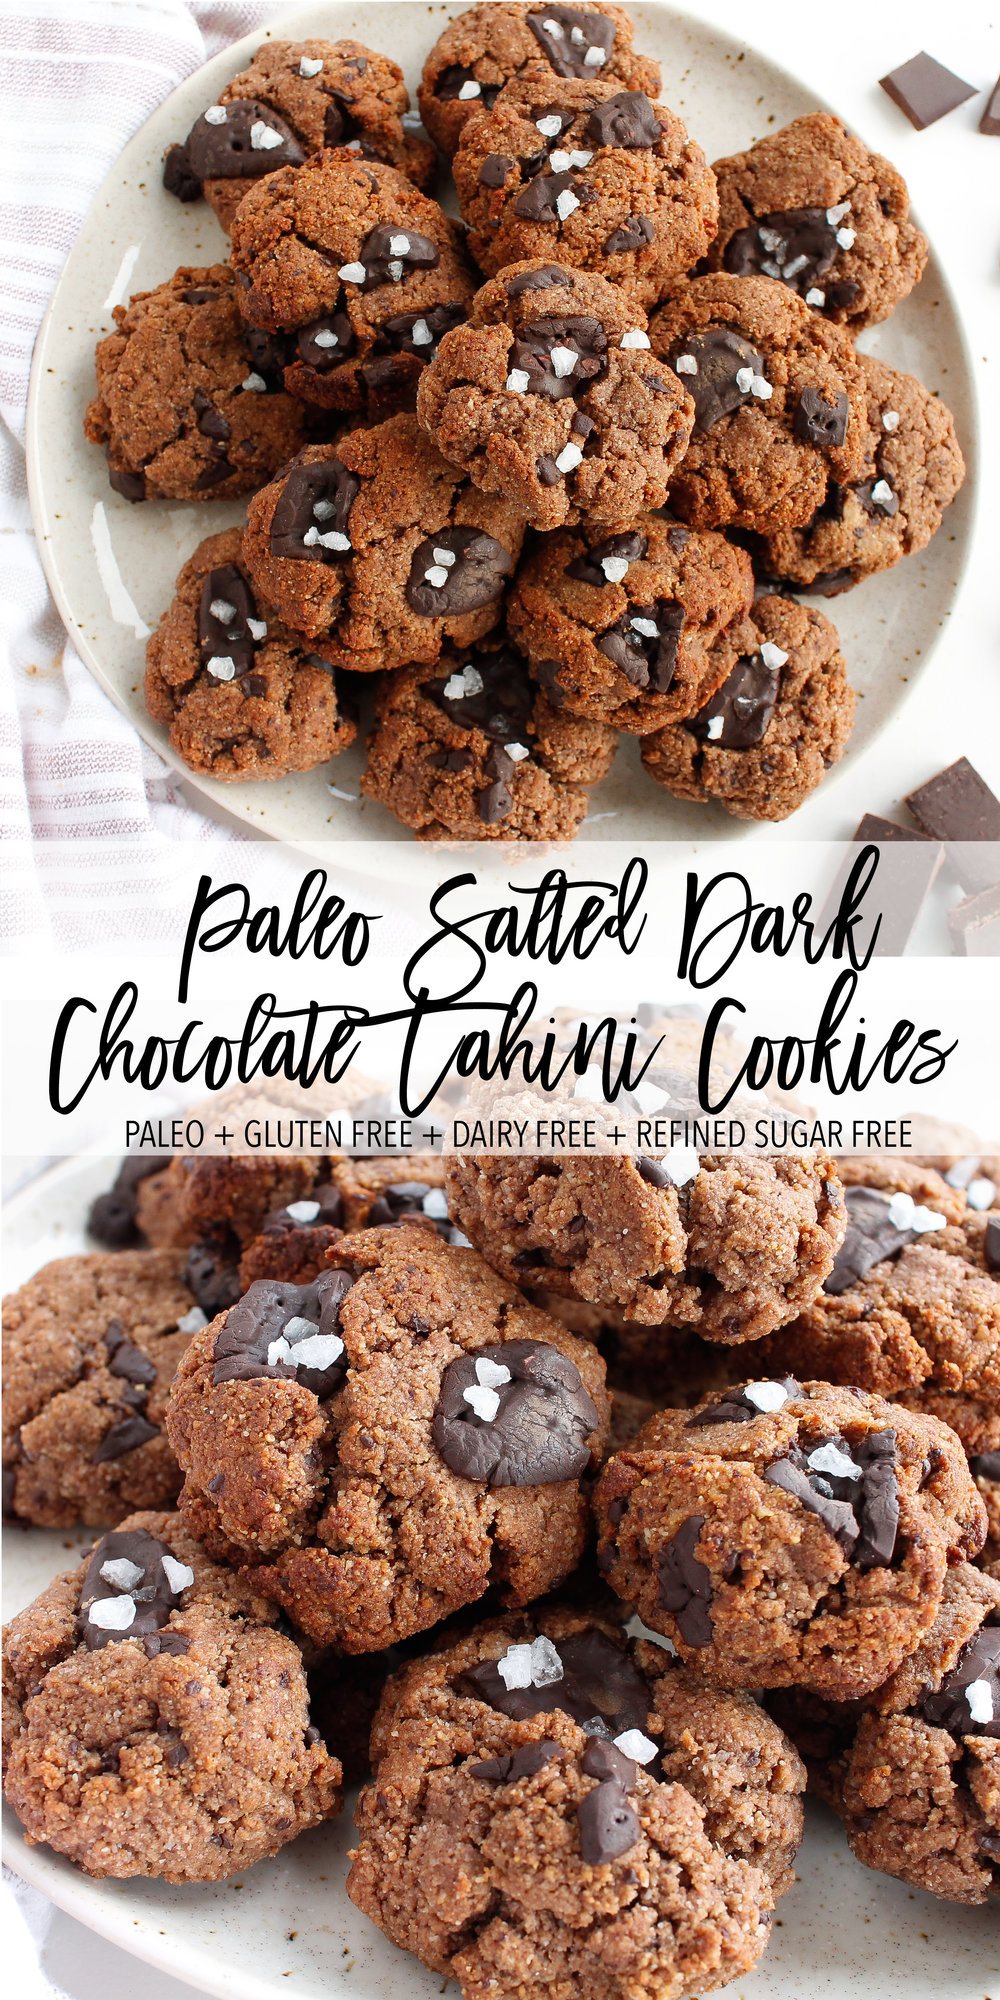 PALEO SALTED CHOCOLATE TAHINI COOKIES